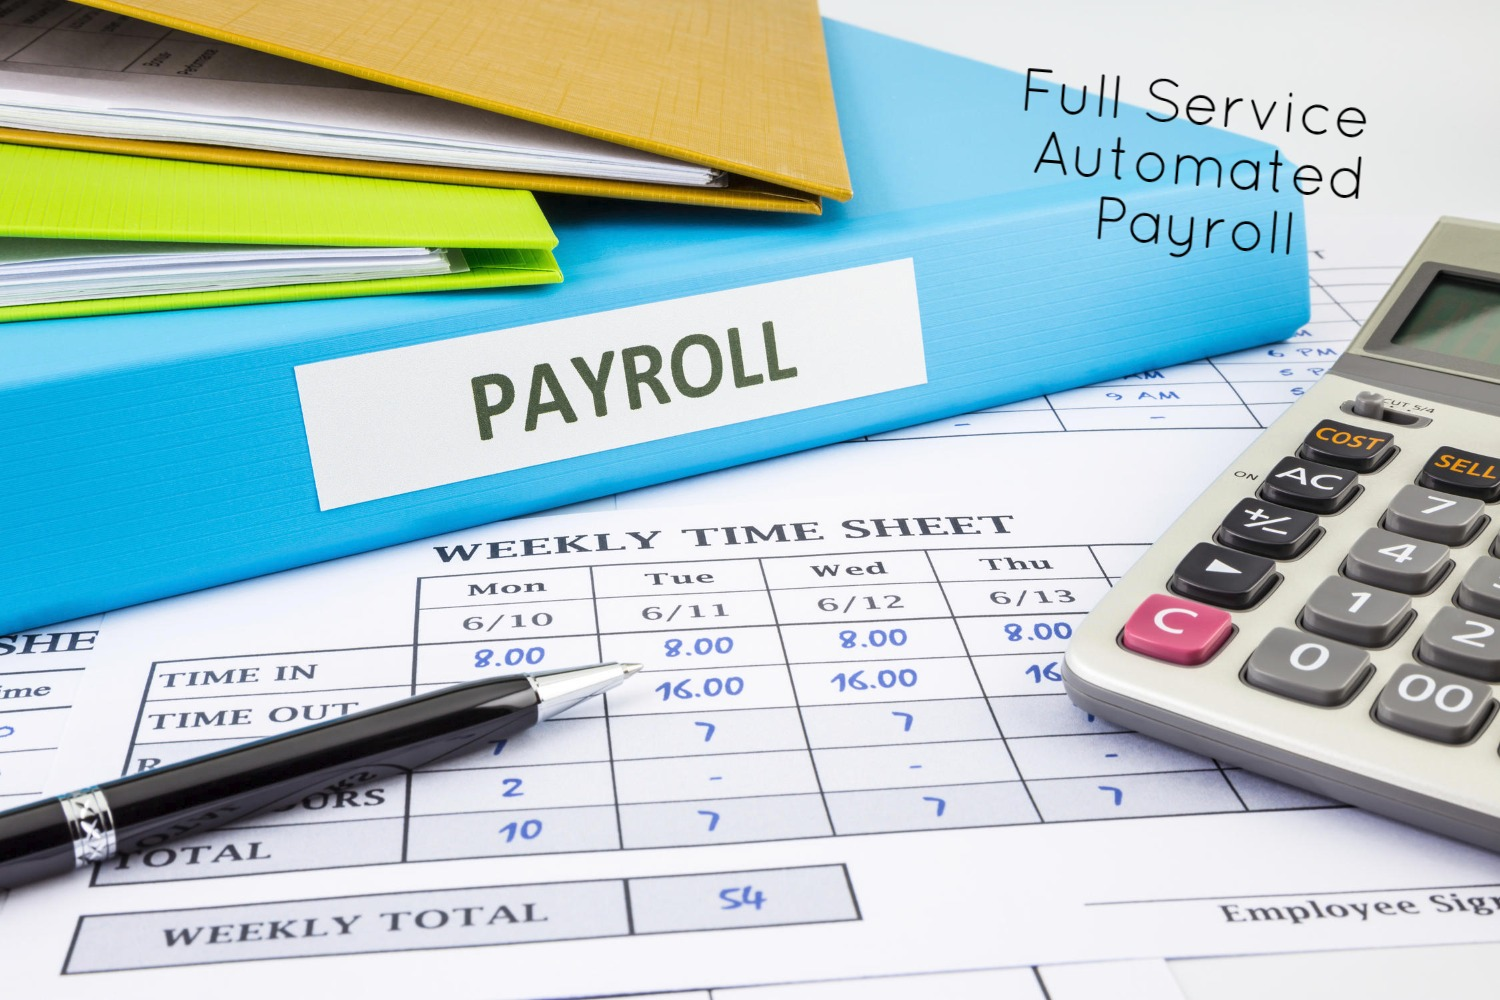 Fully Automated Full Service Payroll 2015-2-26-8:4:16